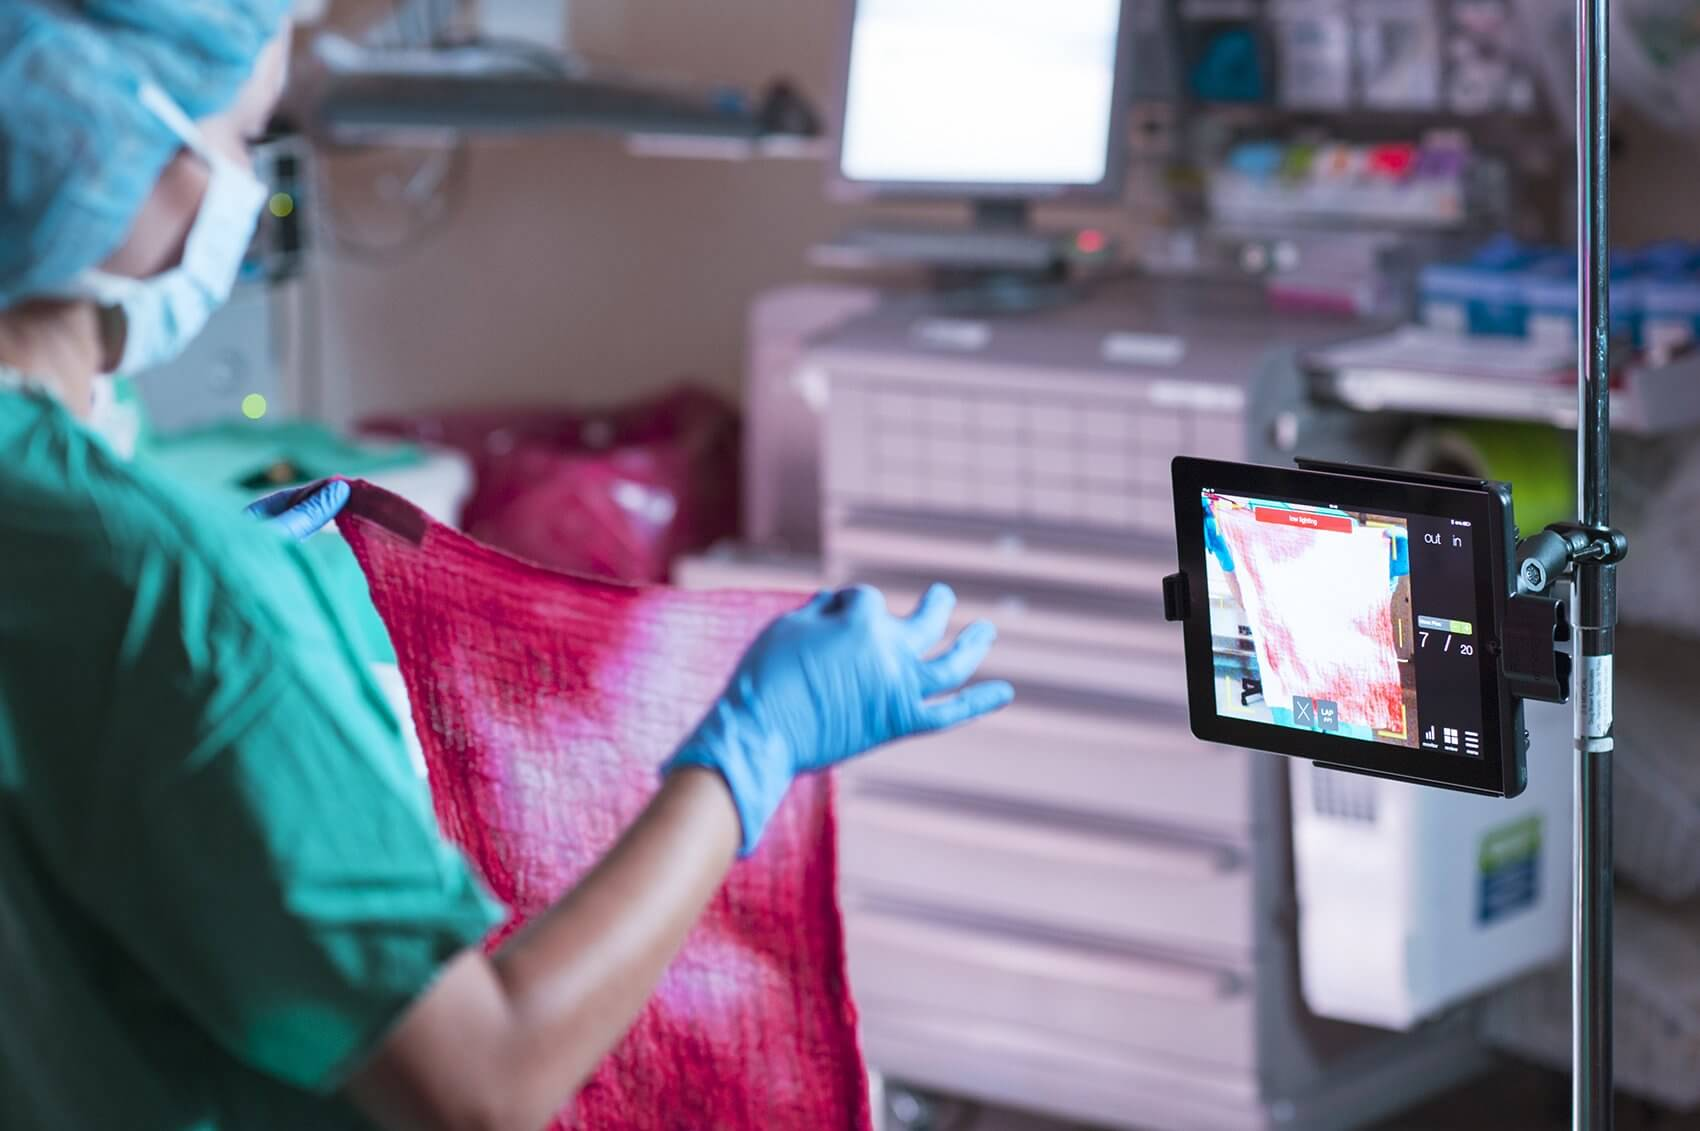 Using the iPad camera, the Triton System scans surgical sponges containing blood and sends the images to the cloud server for processing.